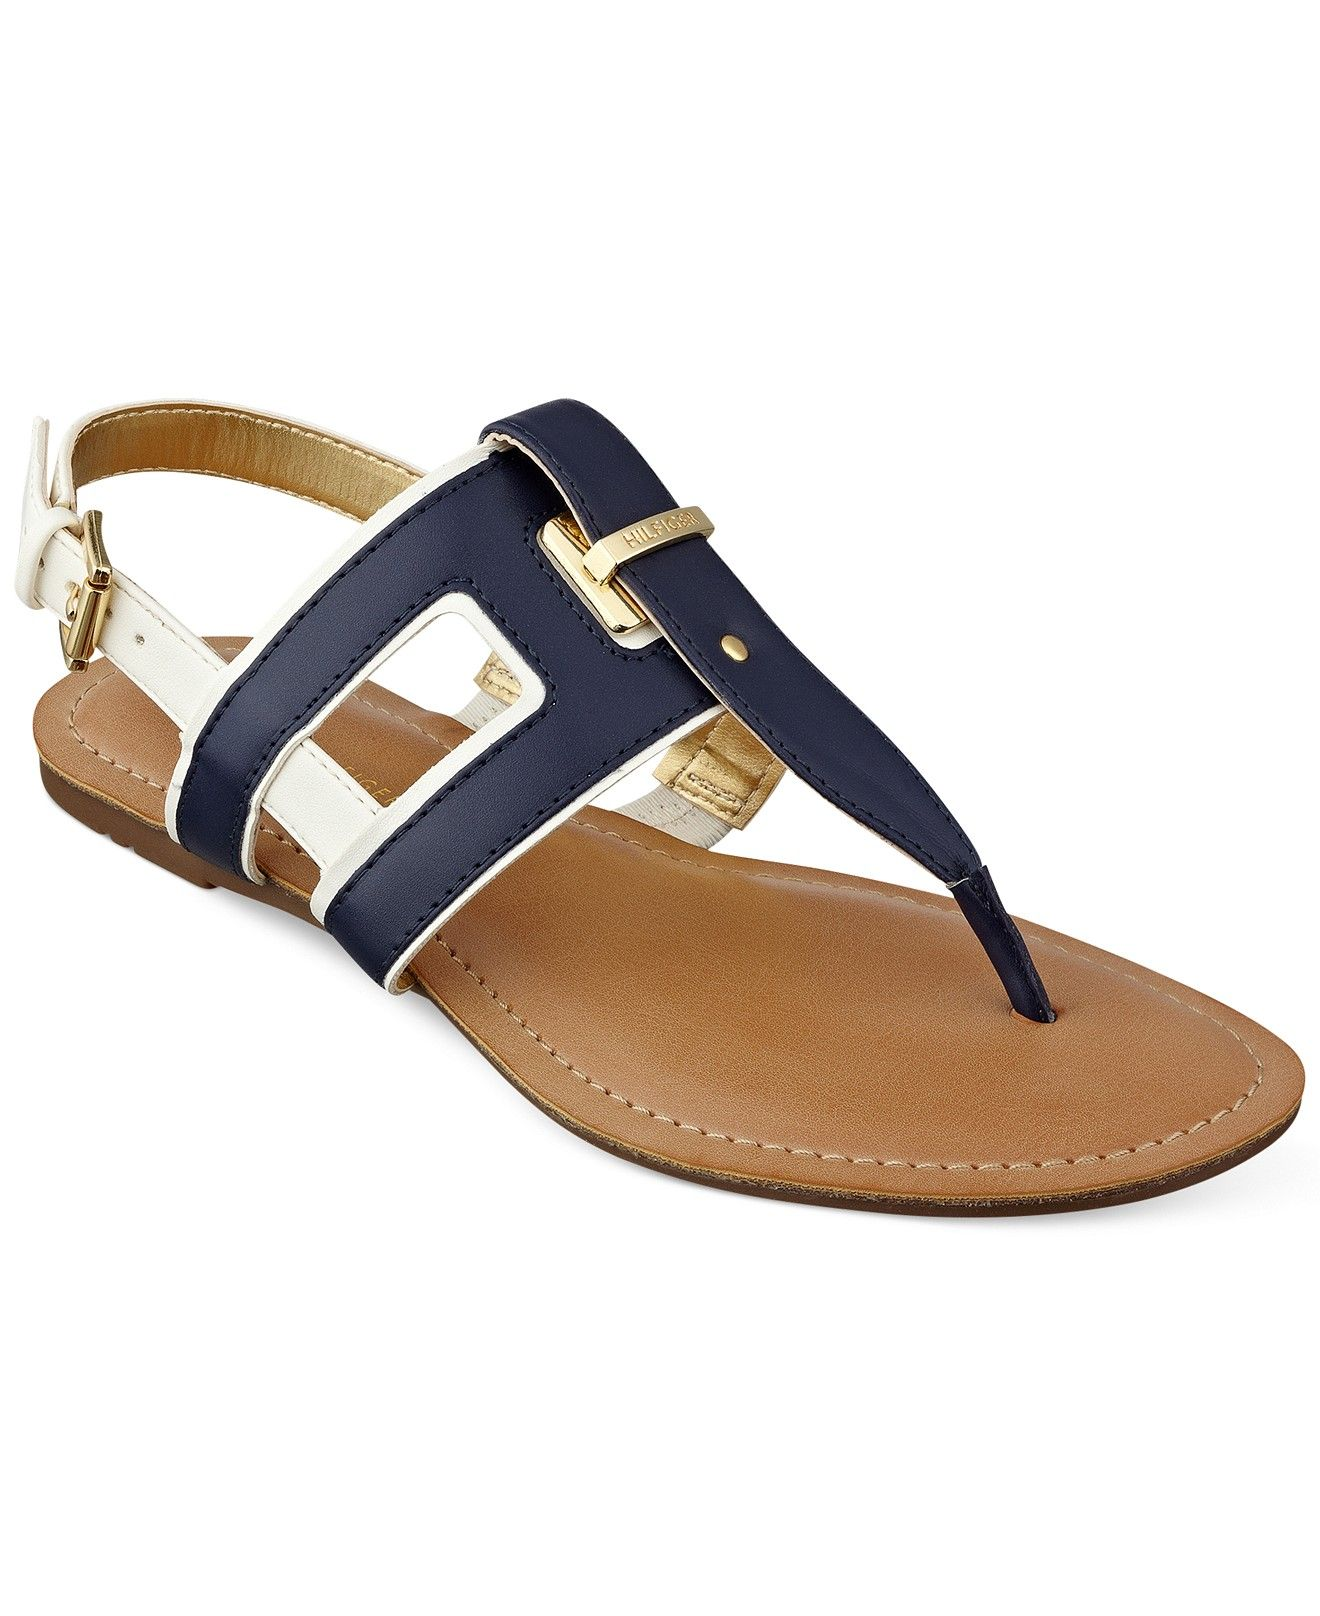 27b782c83 Tommy Hilfiger Women s Lynnie Flat Thong Sandals - Sandals - Shoes - Macy s